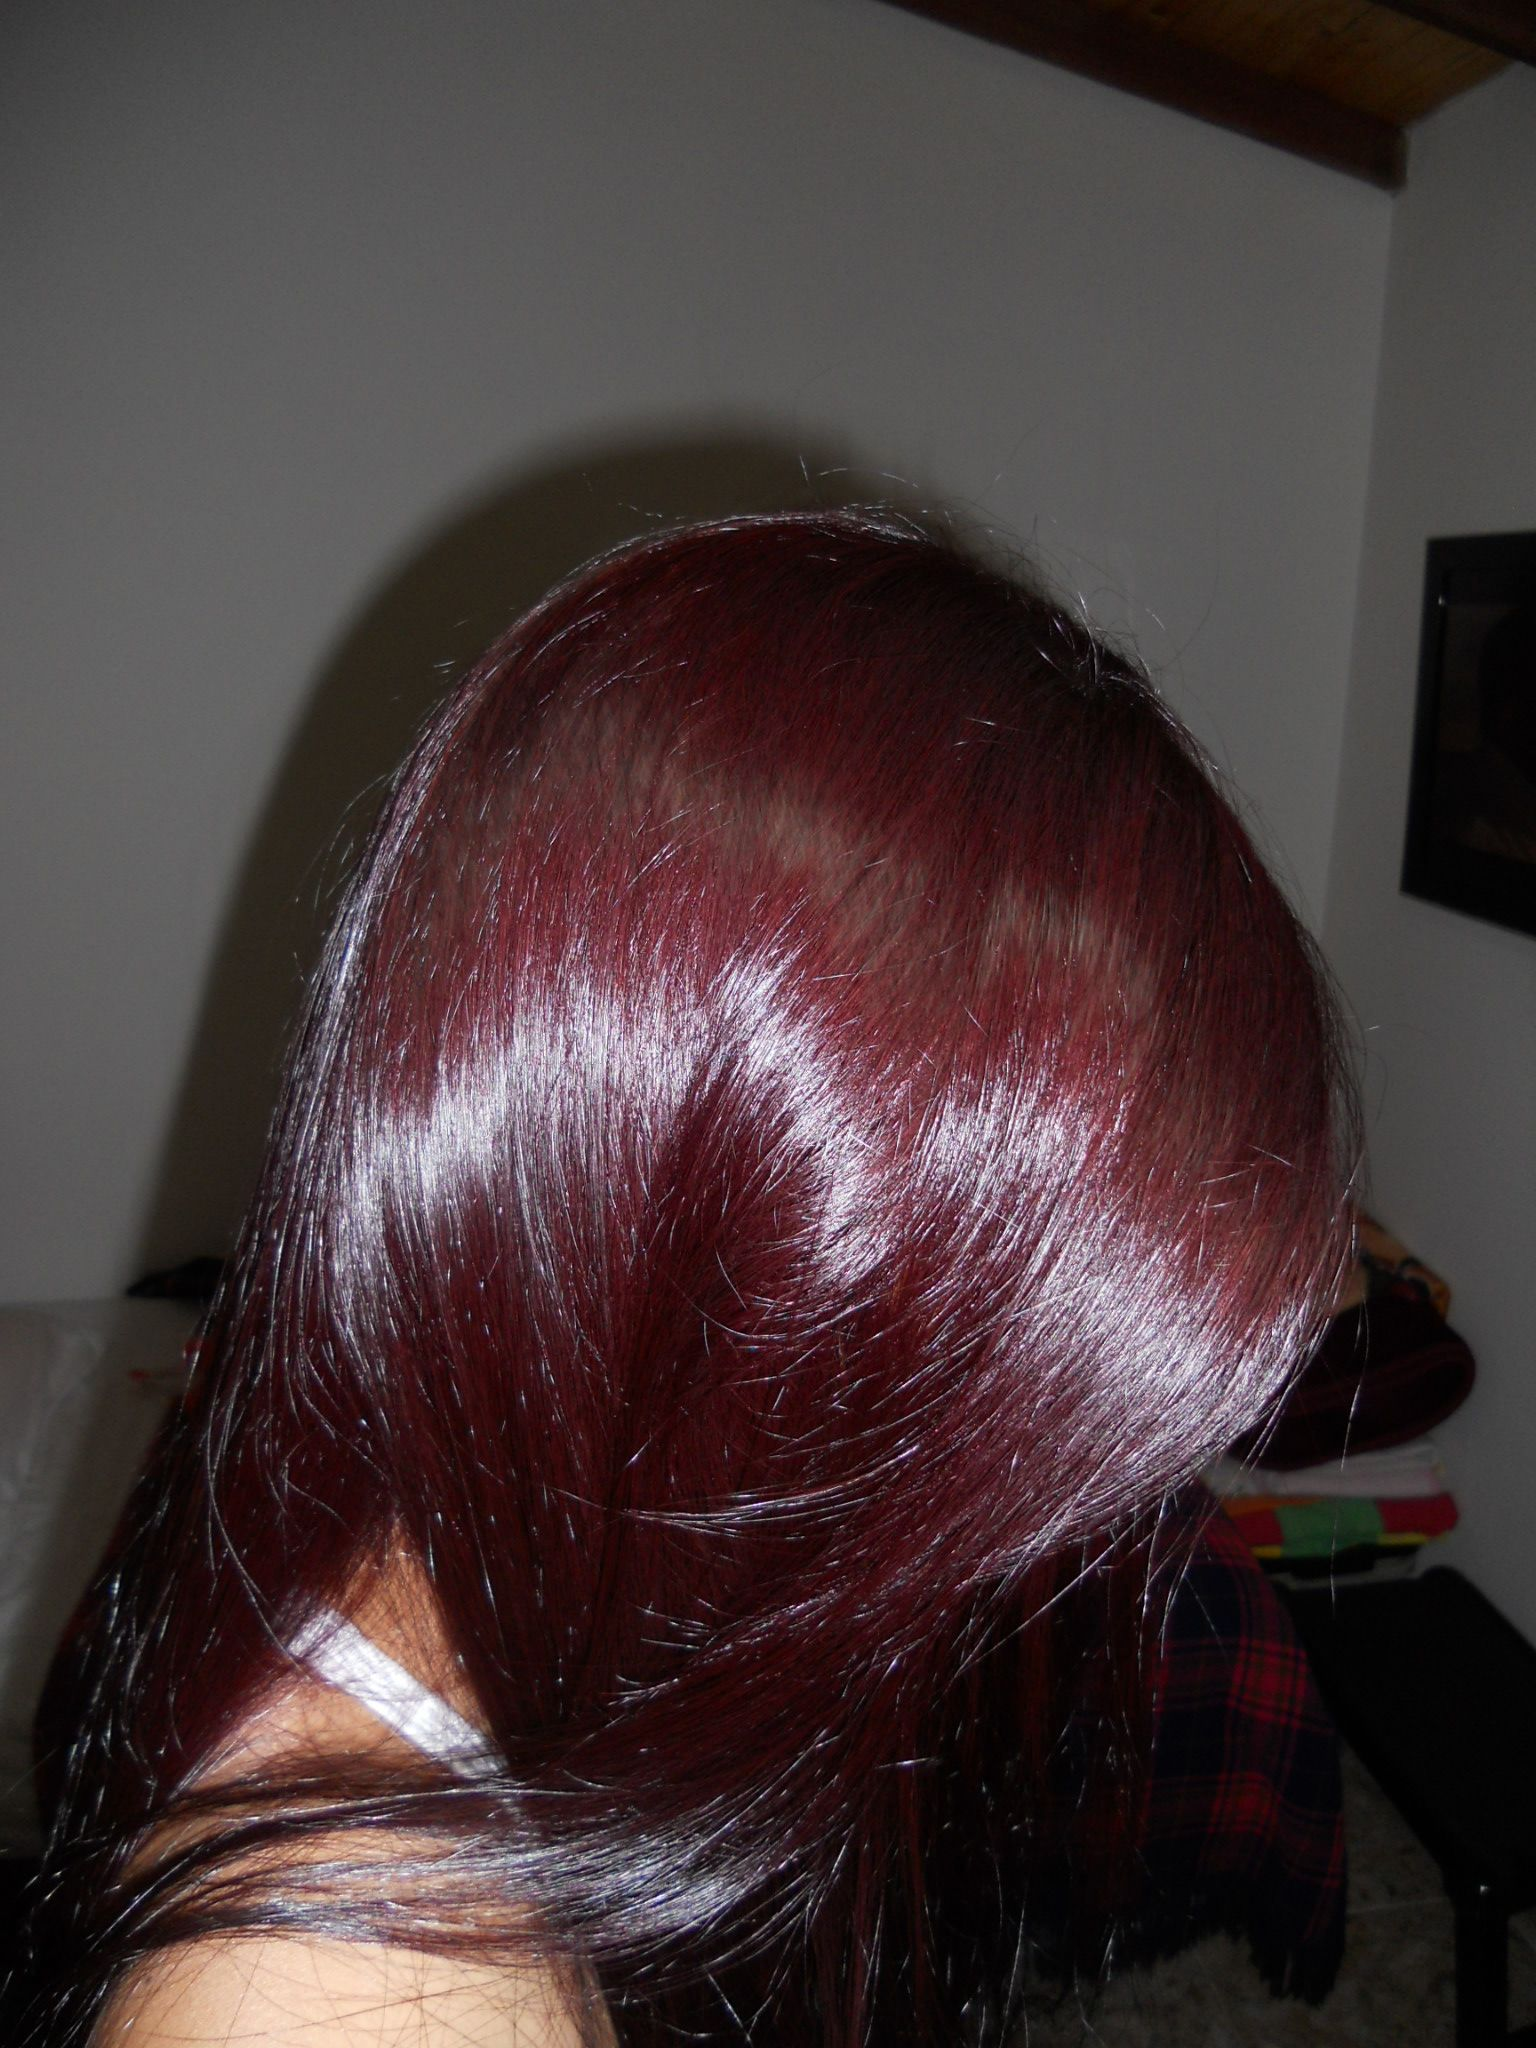 How My Hair Turned Out When I Used Manic Panic Infra Red After Bleaching It Twice From Previously Colored Dark Br Bright Red Hair Cool Hairstyles Dyed Red Hair